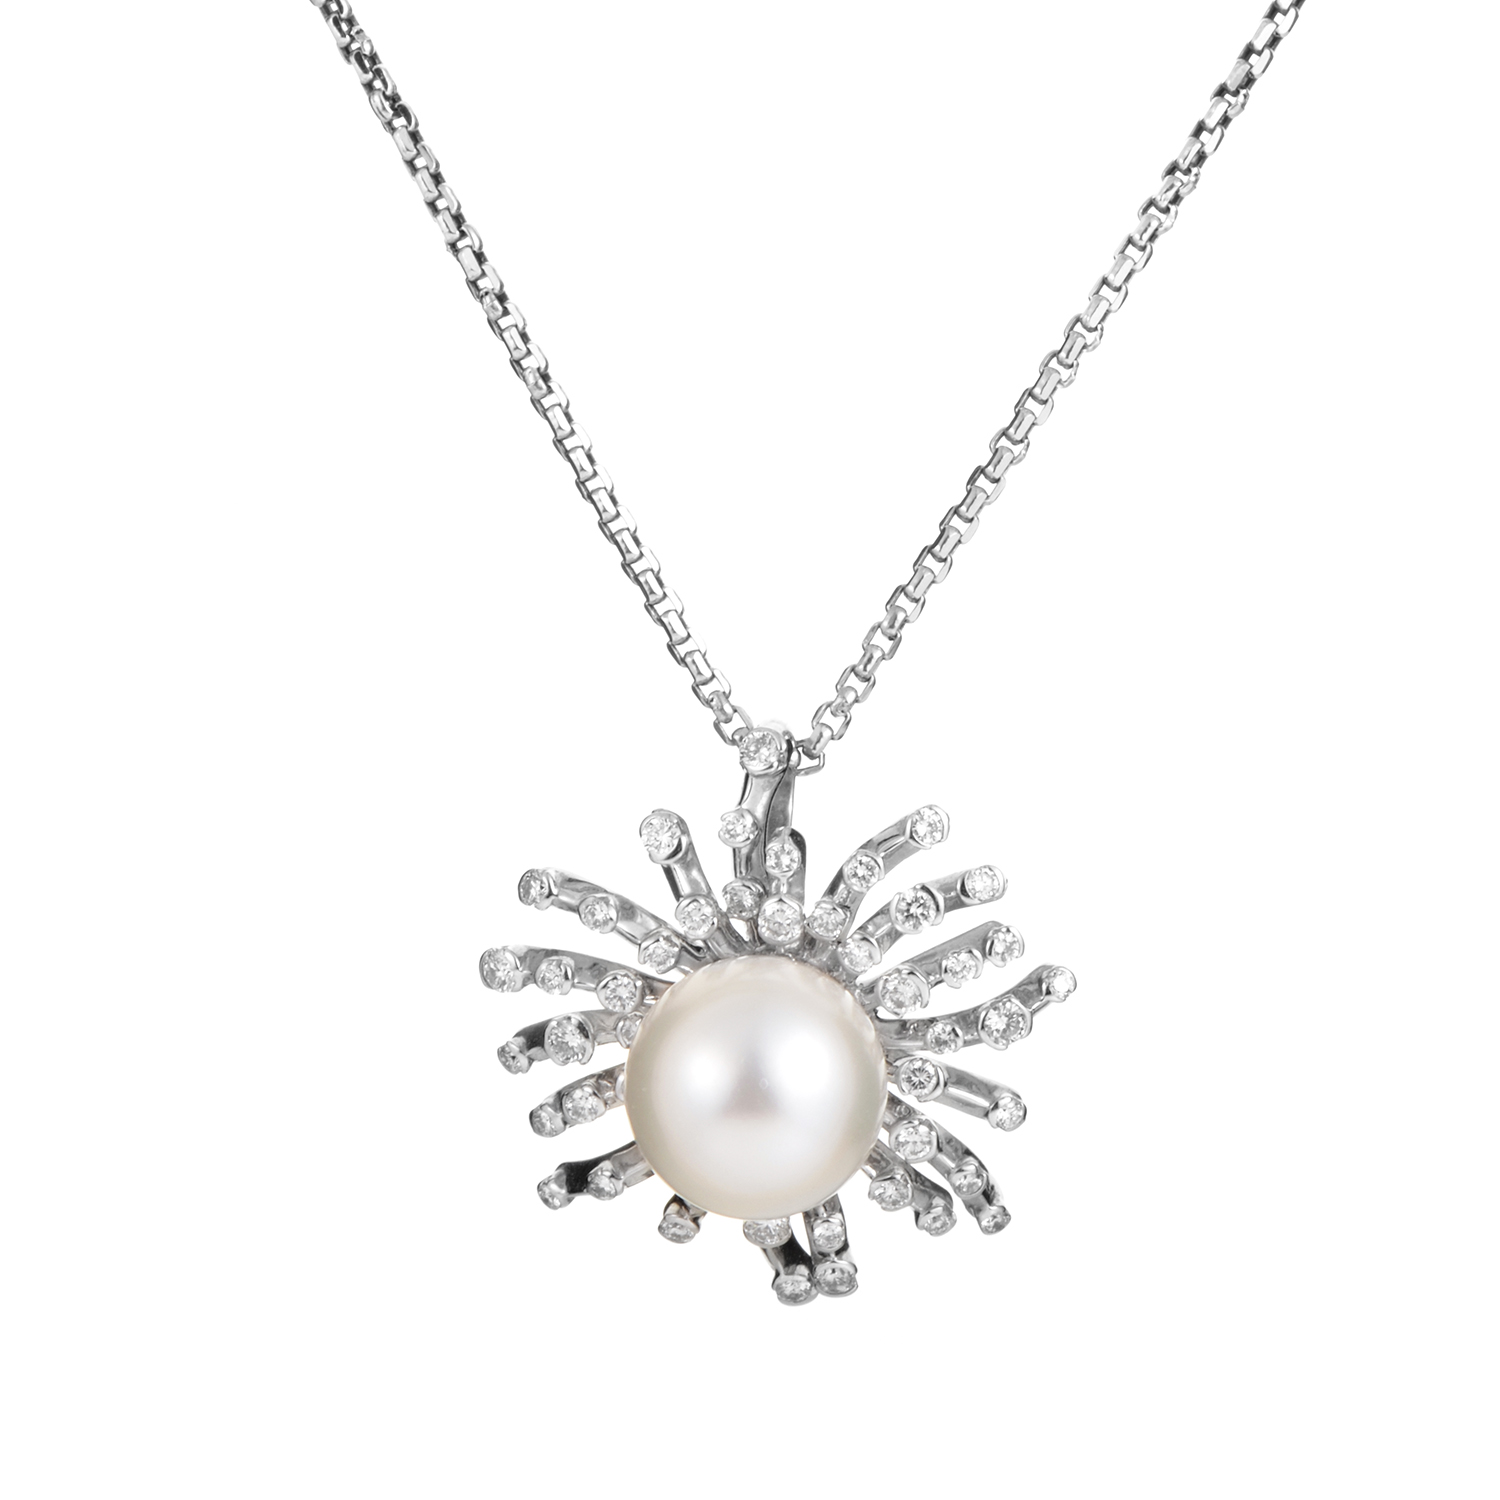 18K White Gold Necklace With Diamond & Pearl Pendant